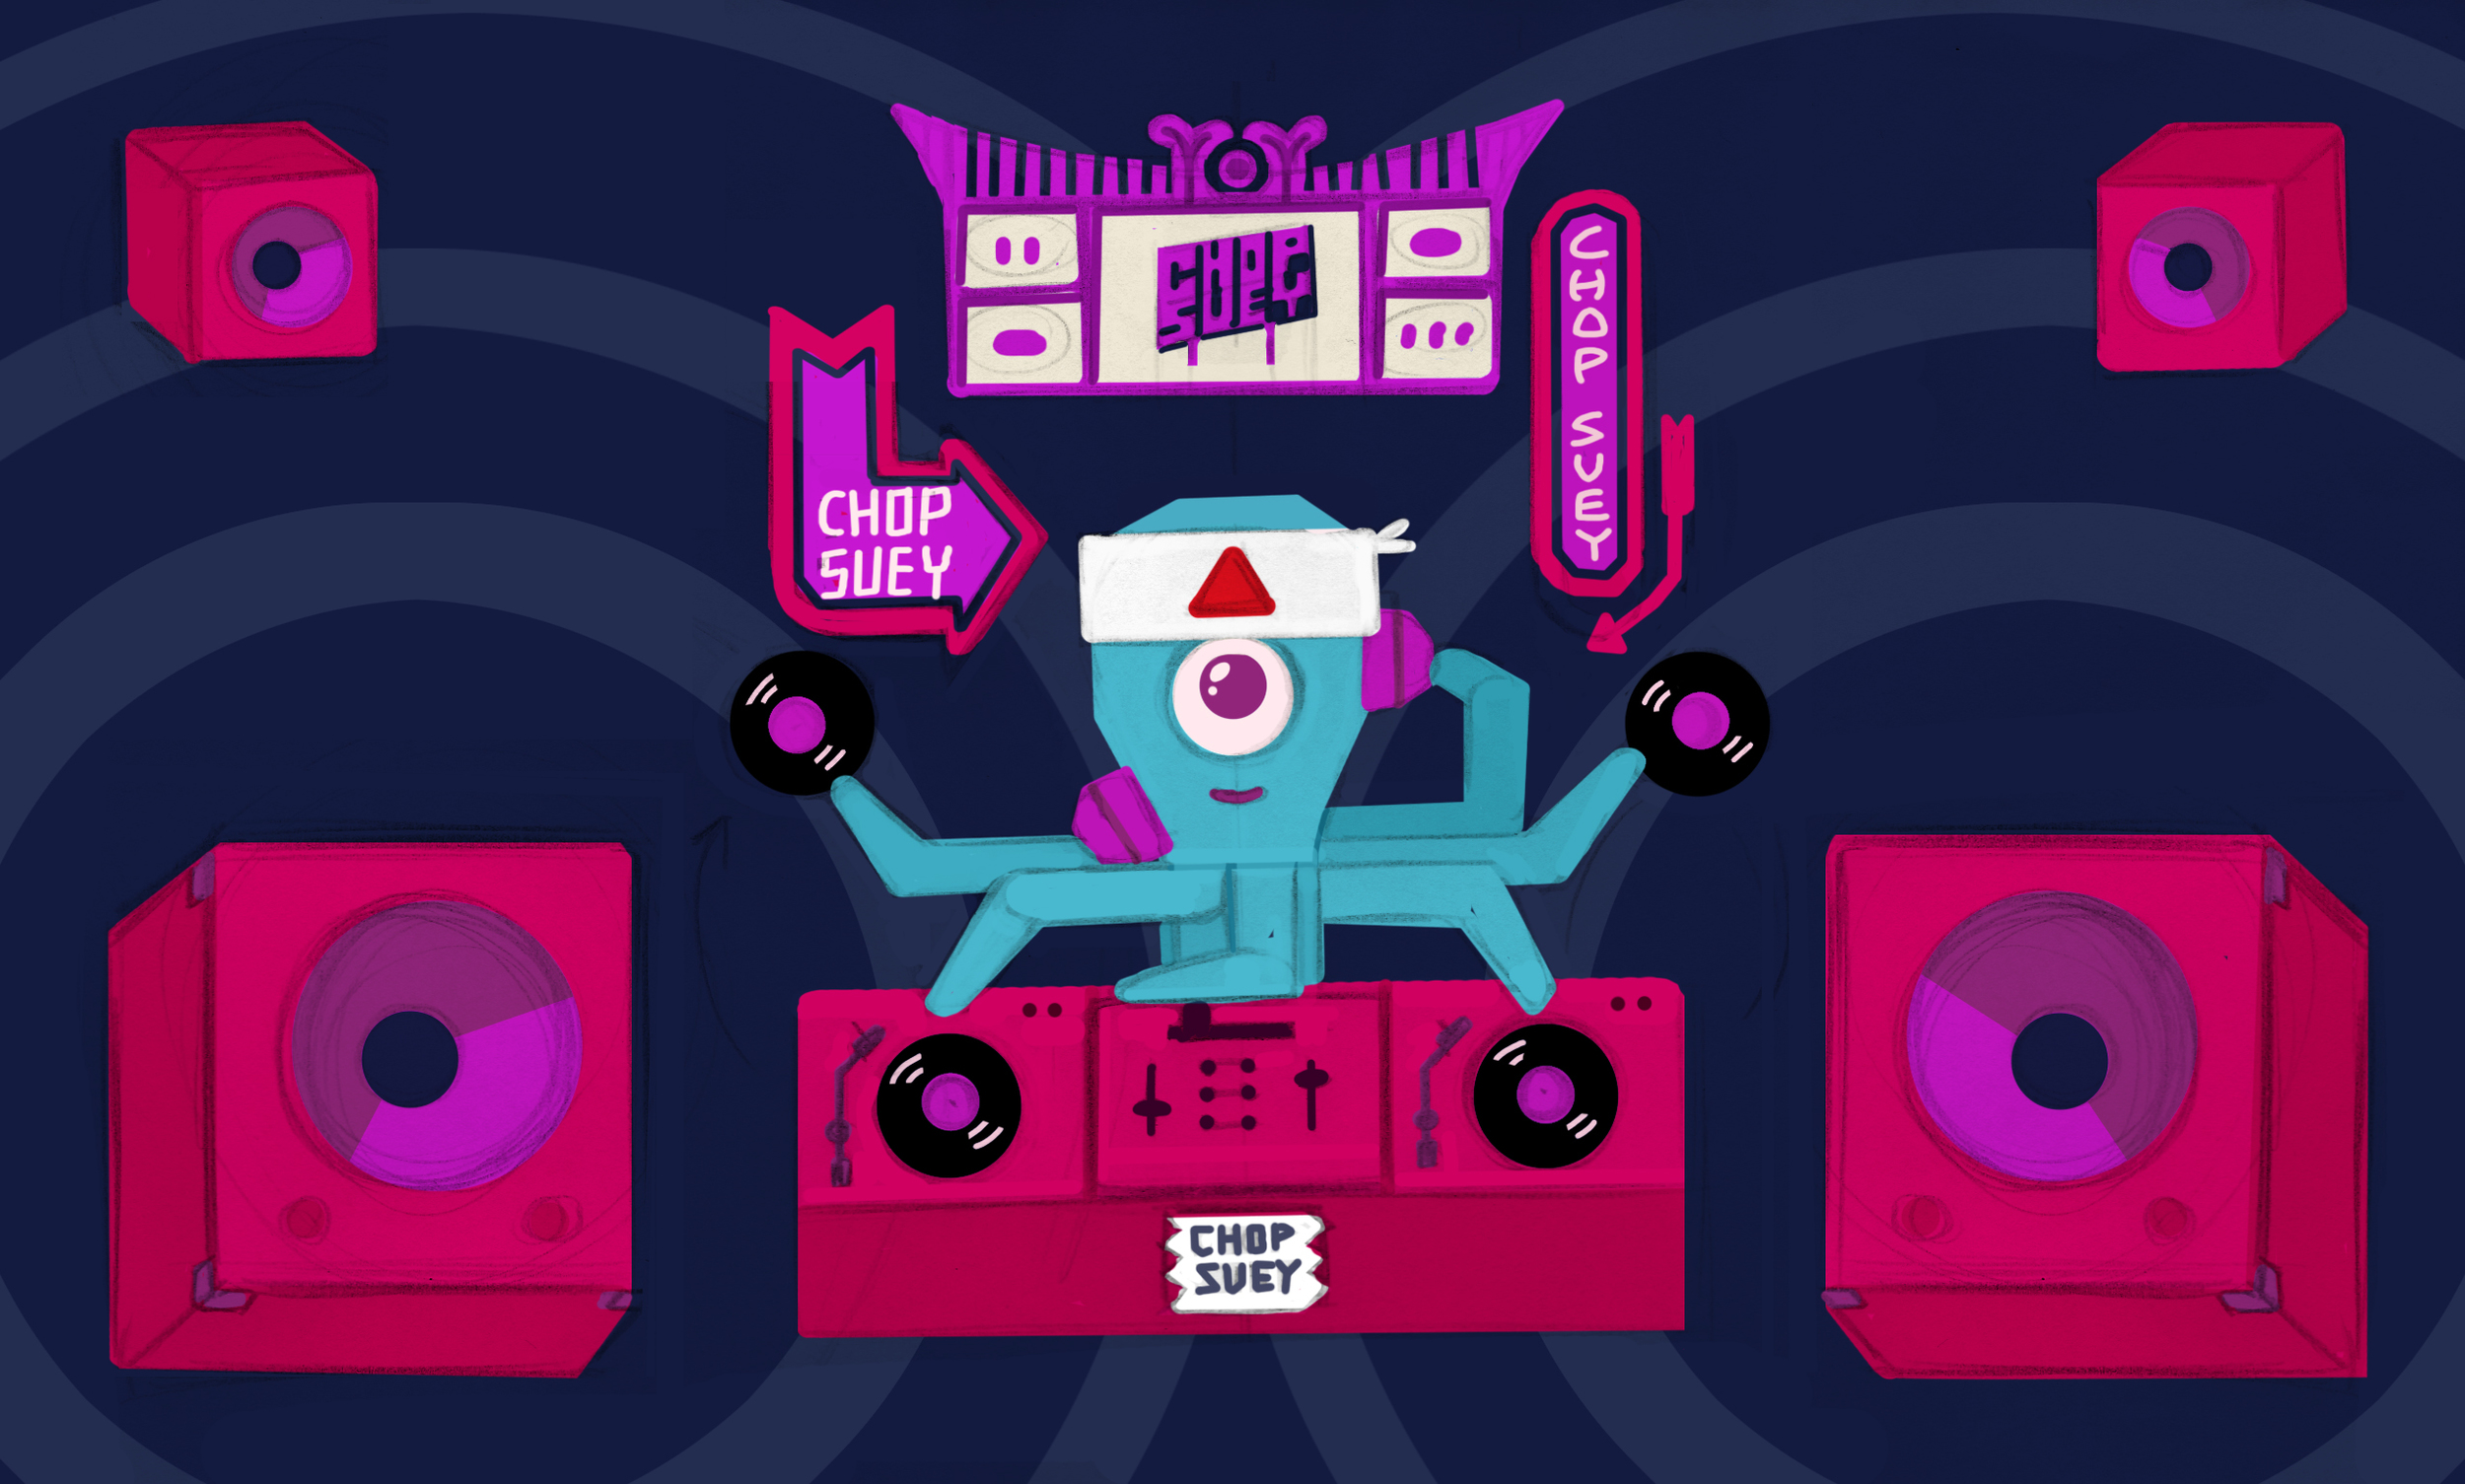 A concept for a music video we designed for DJ Yoda's awesome new track 'chop suey'